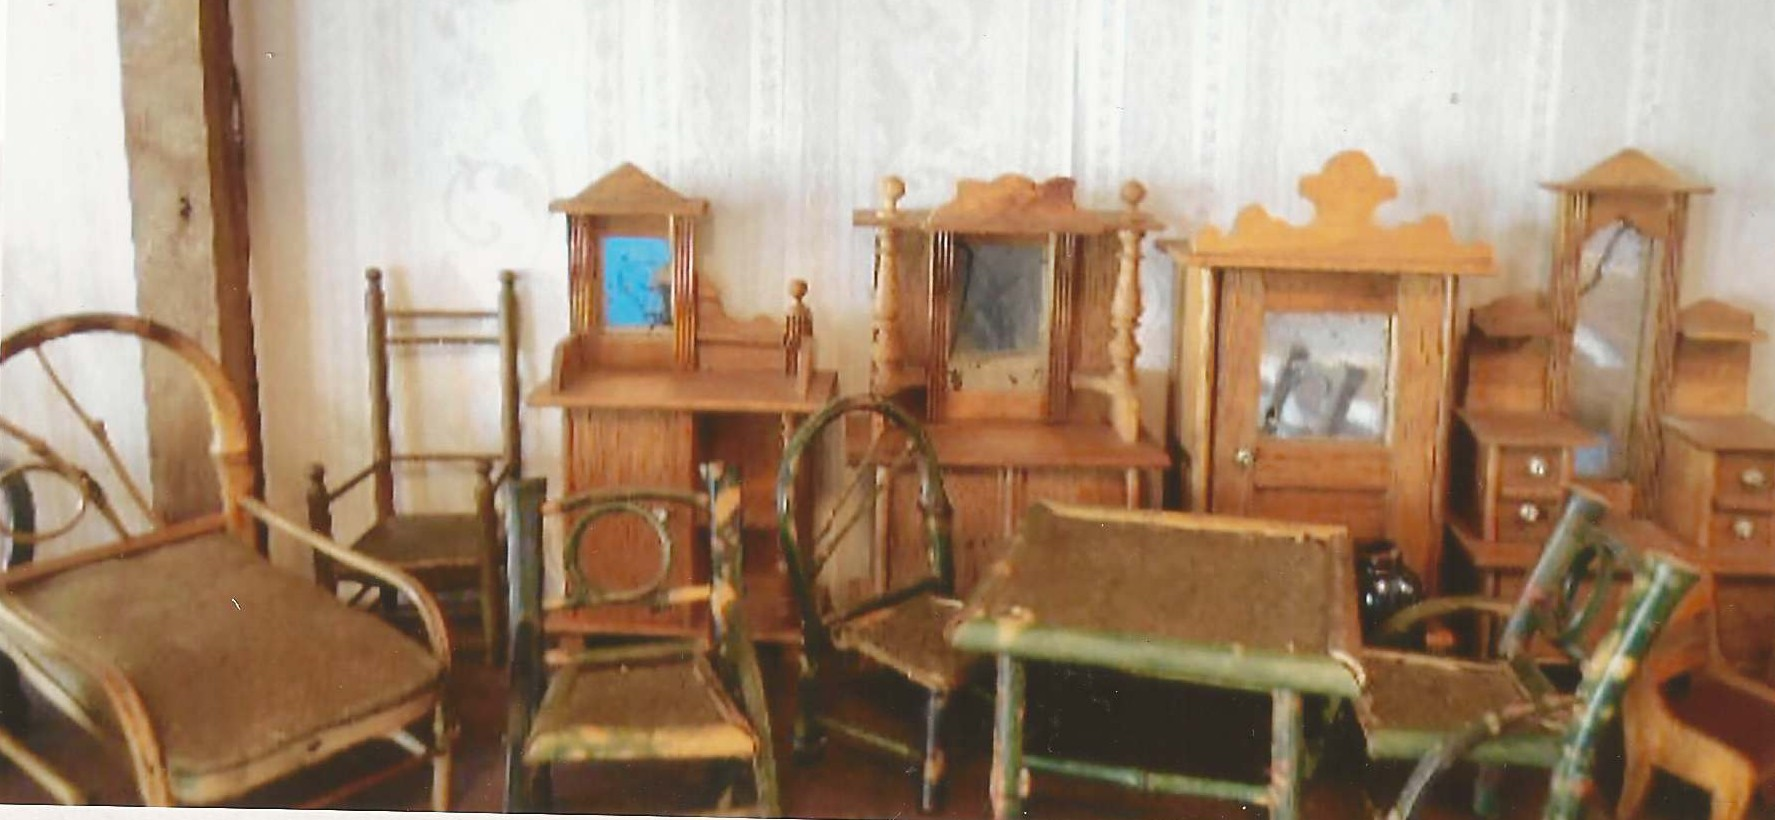 The Bamboo Furniture Reflects Its Popularity From 1870 1930 When Large  Quantities Were Manufactured For American Homes.